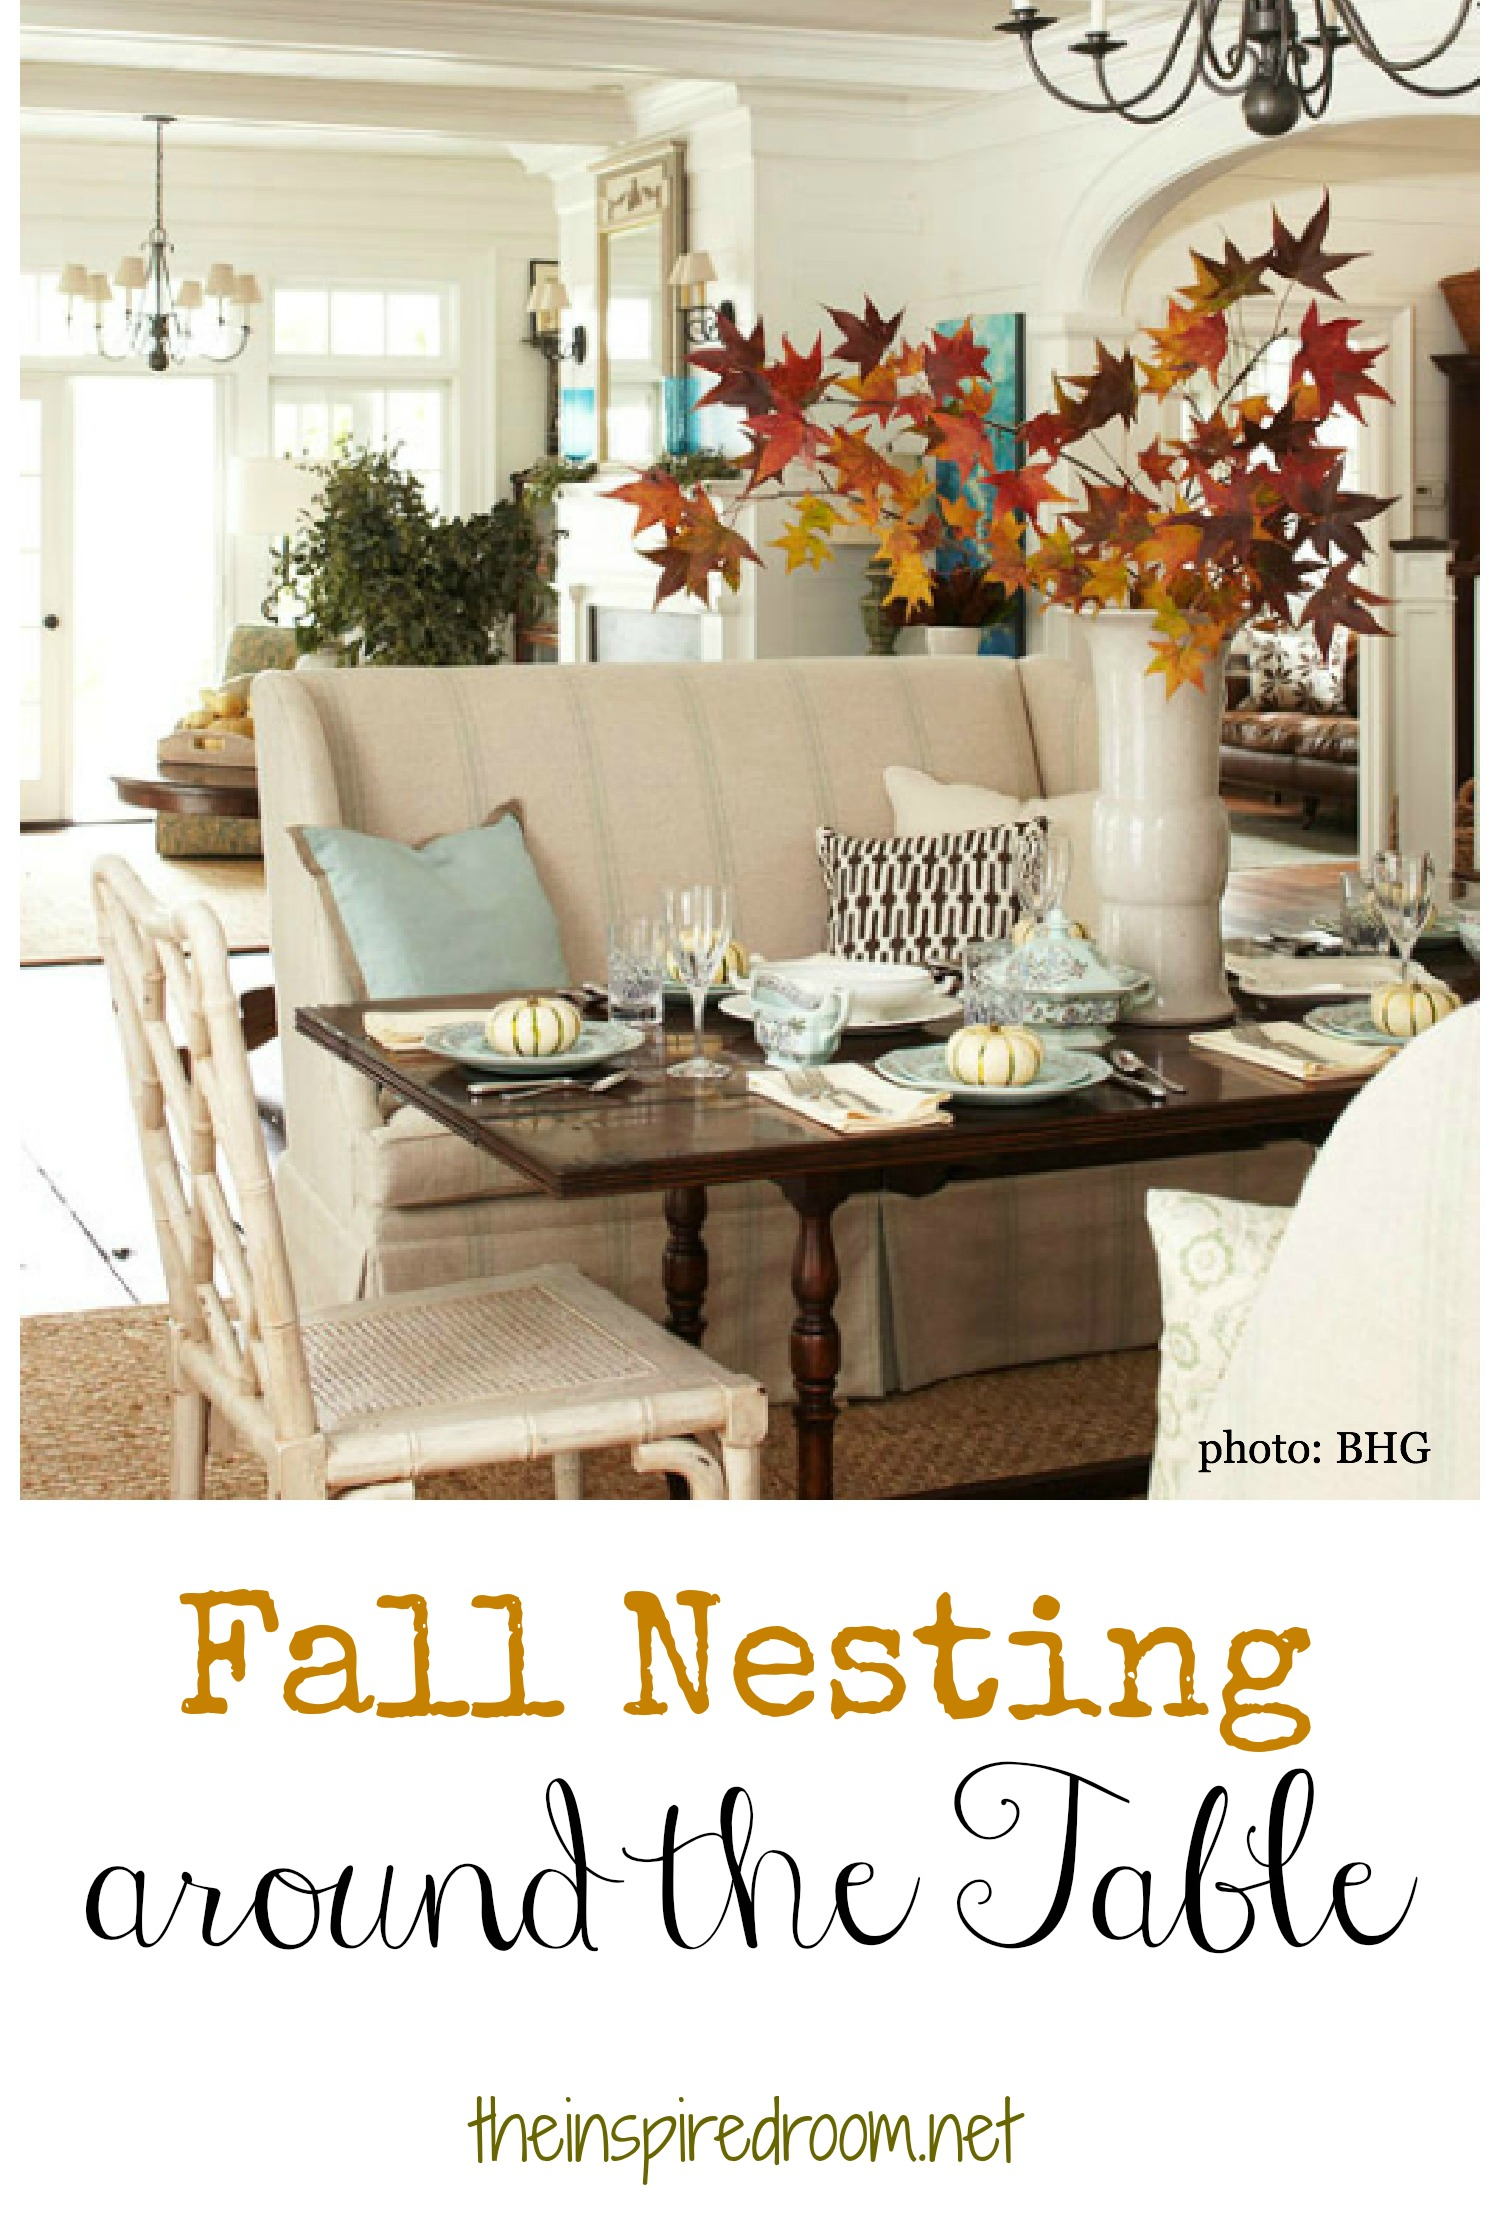 Fall Nesting {Around The Table} - The Inspired Room